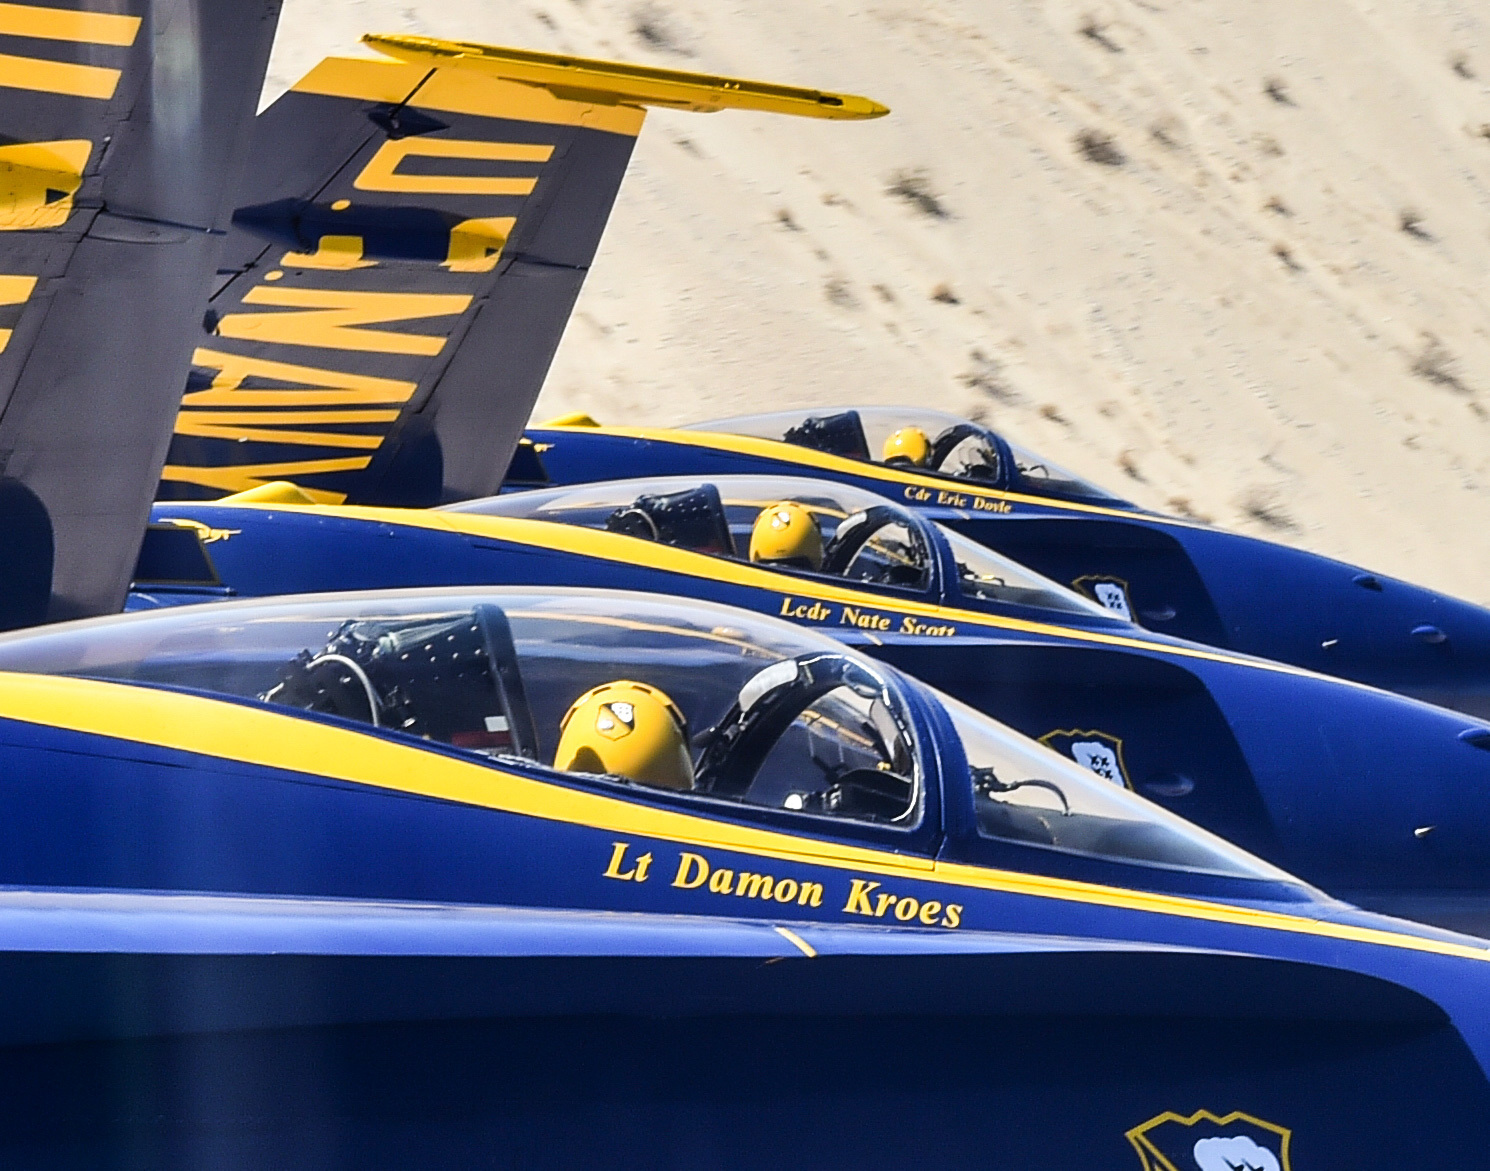 Blue Angels Diamond pilots perform the Diamond Echelon Parade during a winter training flight over El Centro, California. (Mass Communication Specialist 1st Class Ian Cotter/Navy)